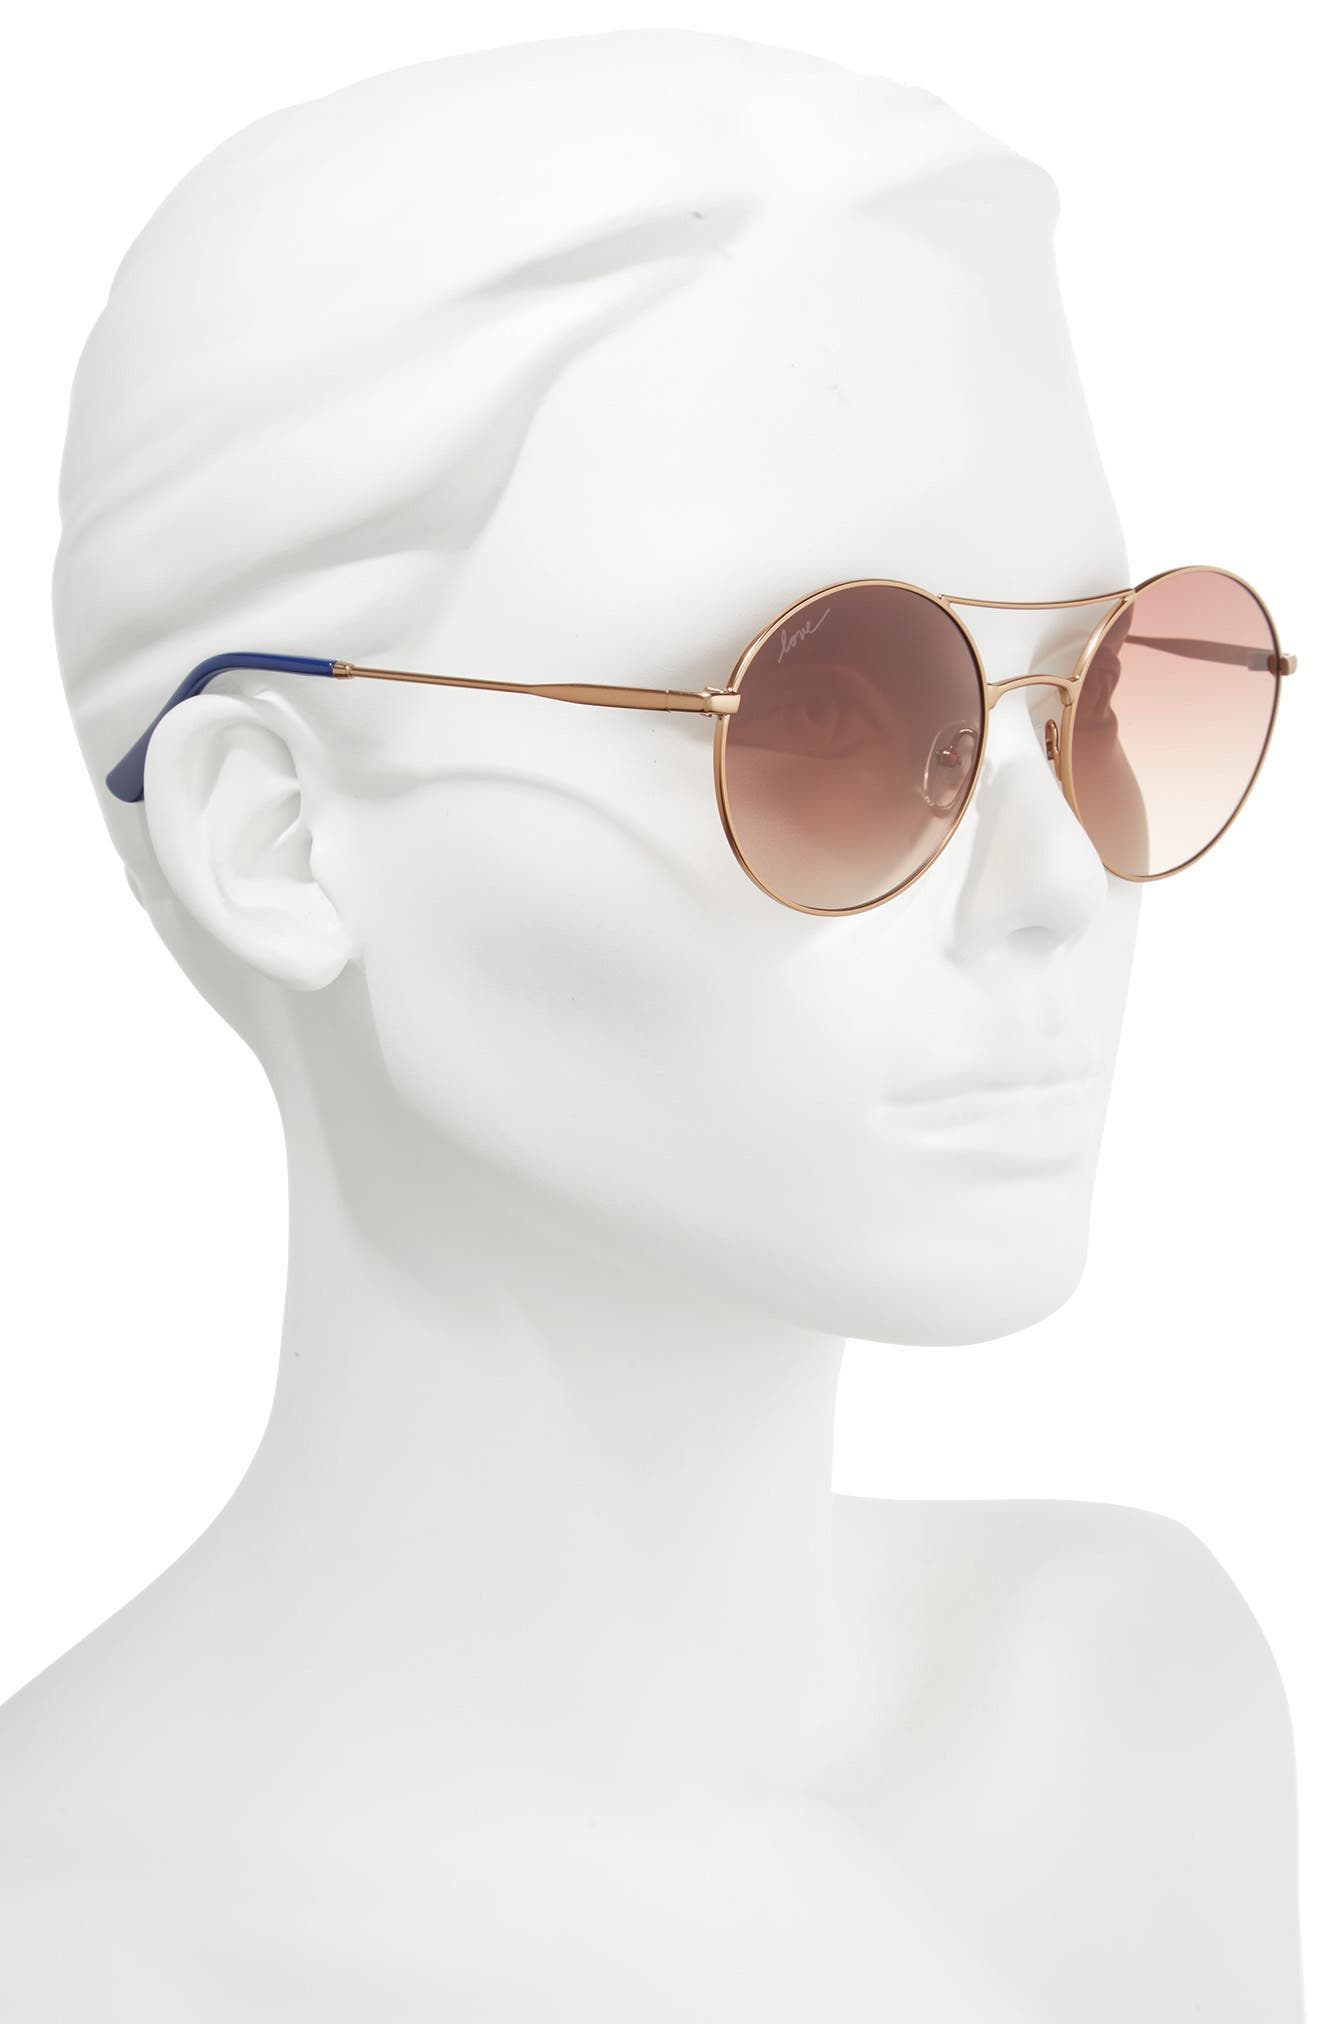 55mm Round Sunglasses,                             Alternate thumbnail 3, color,                             Bronze